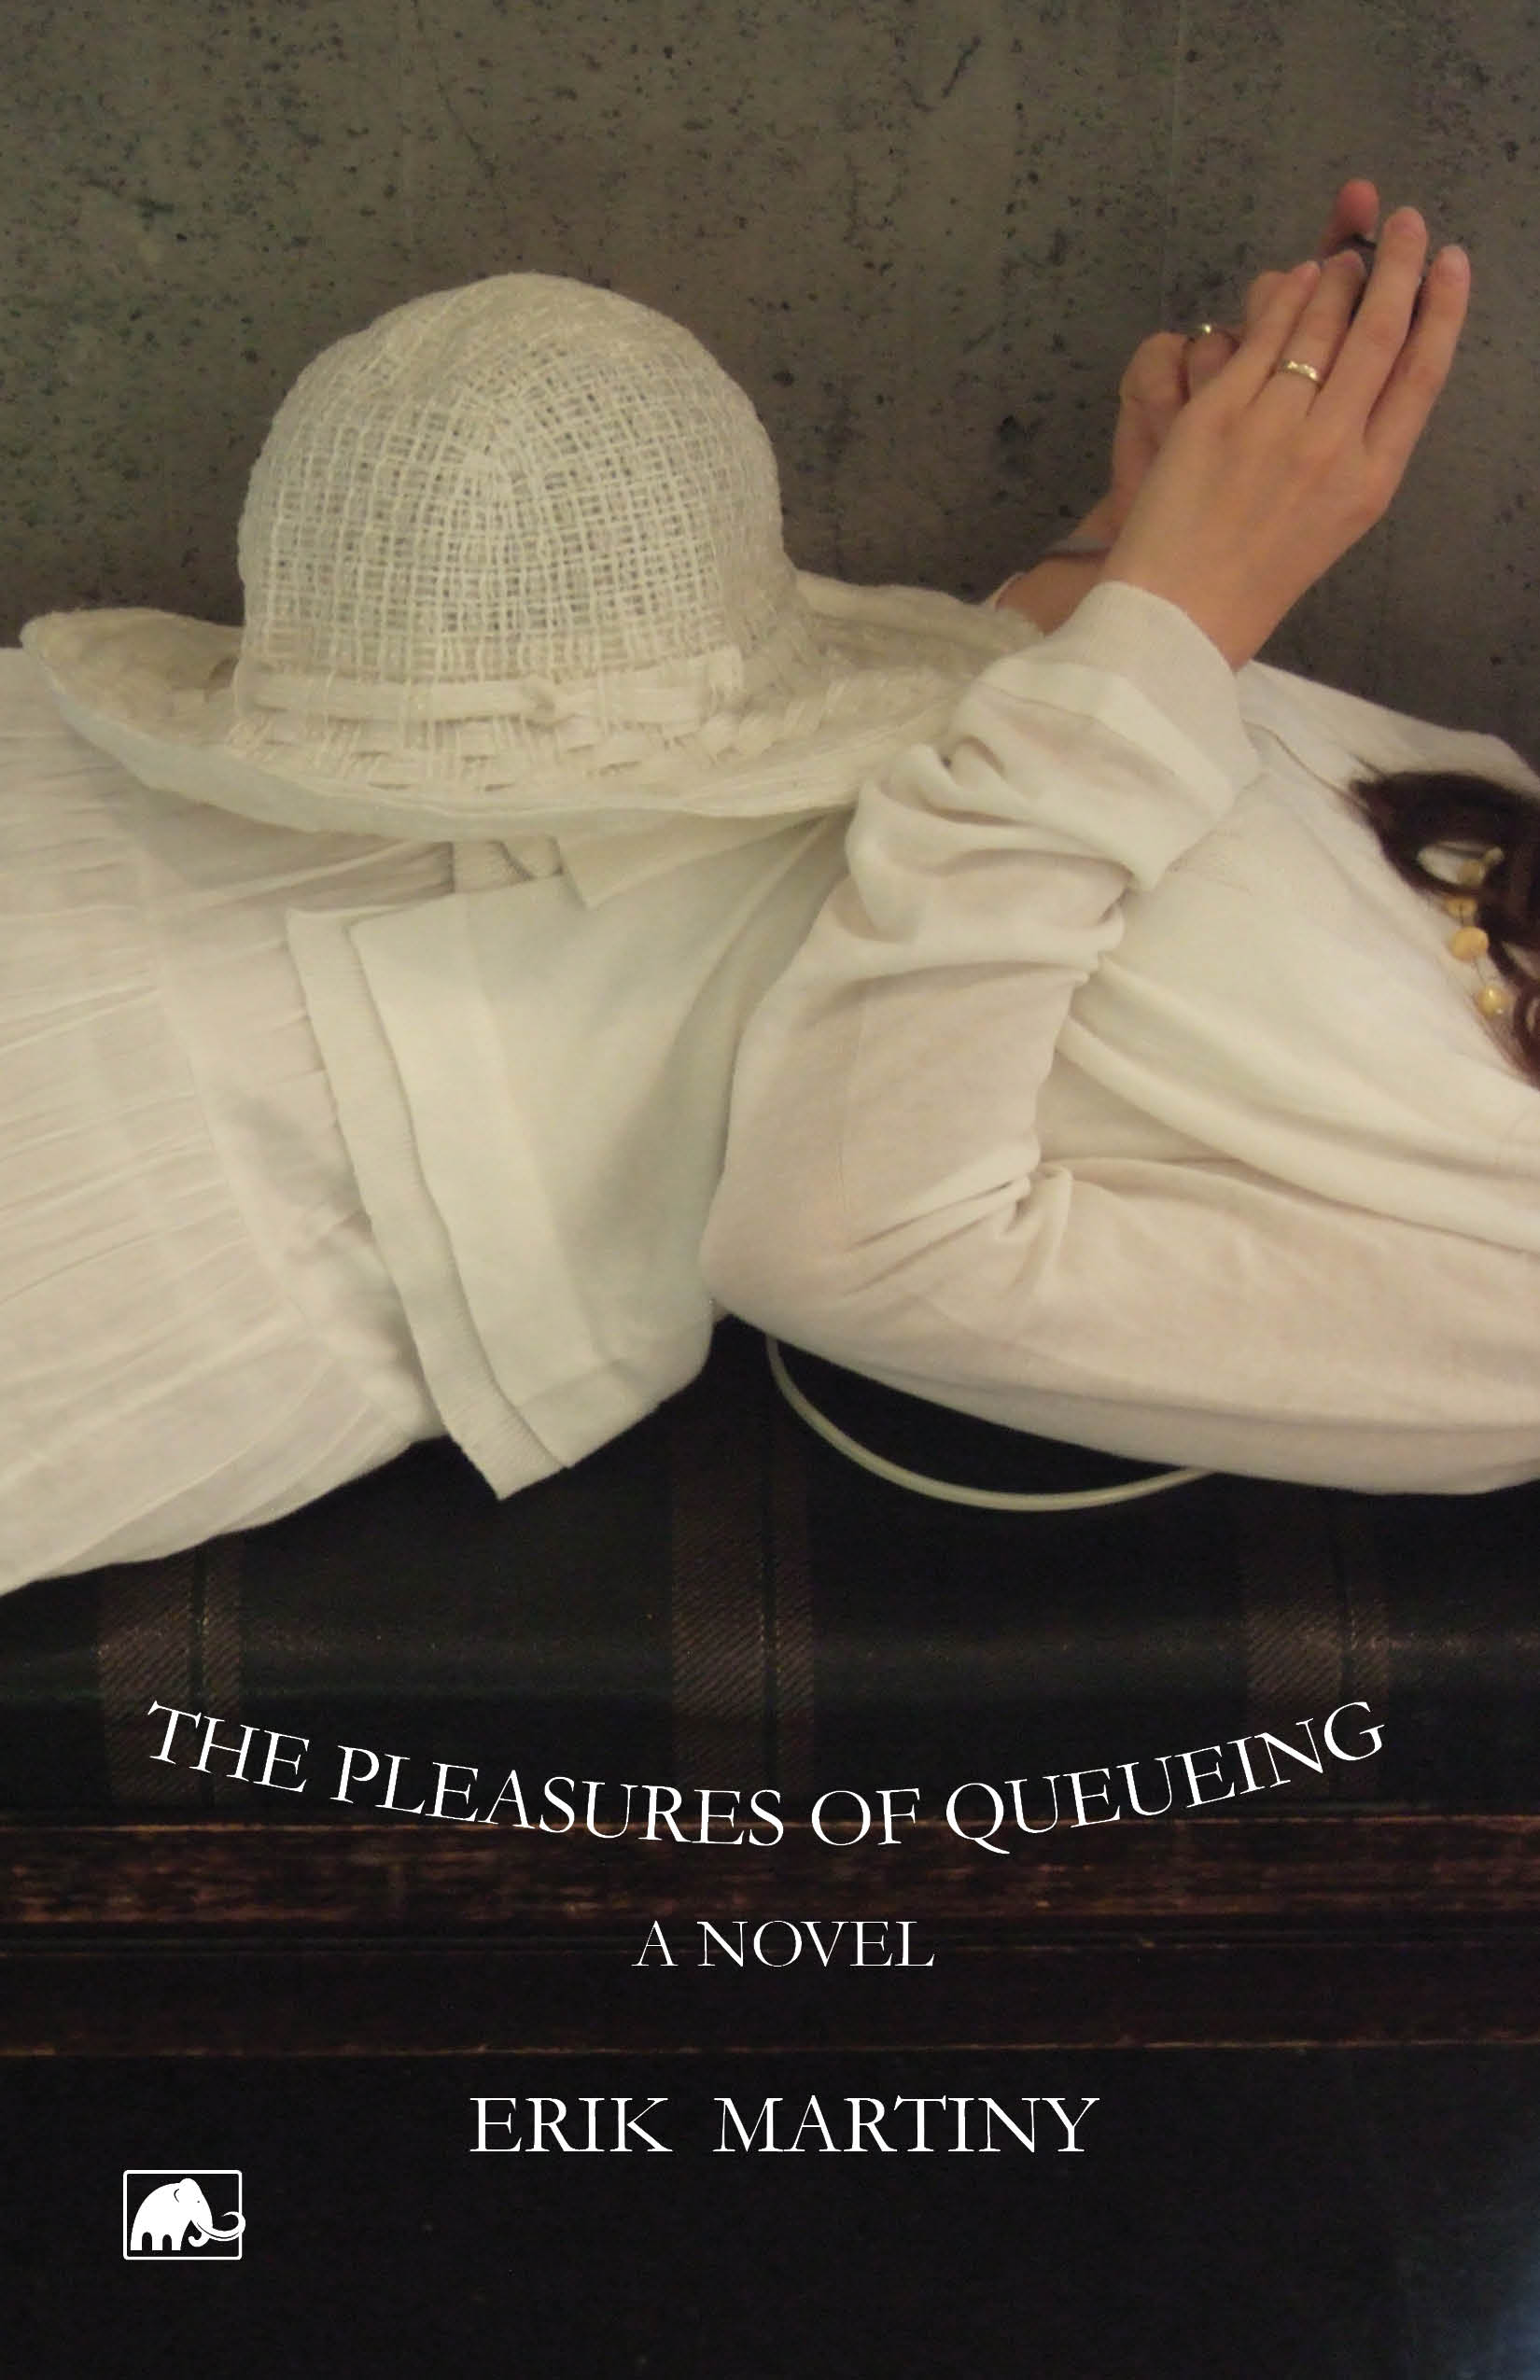 Review of 'The Pleasures of Queueing' by former MA student